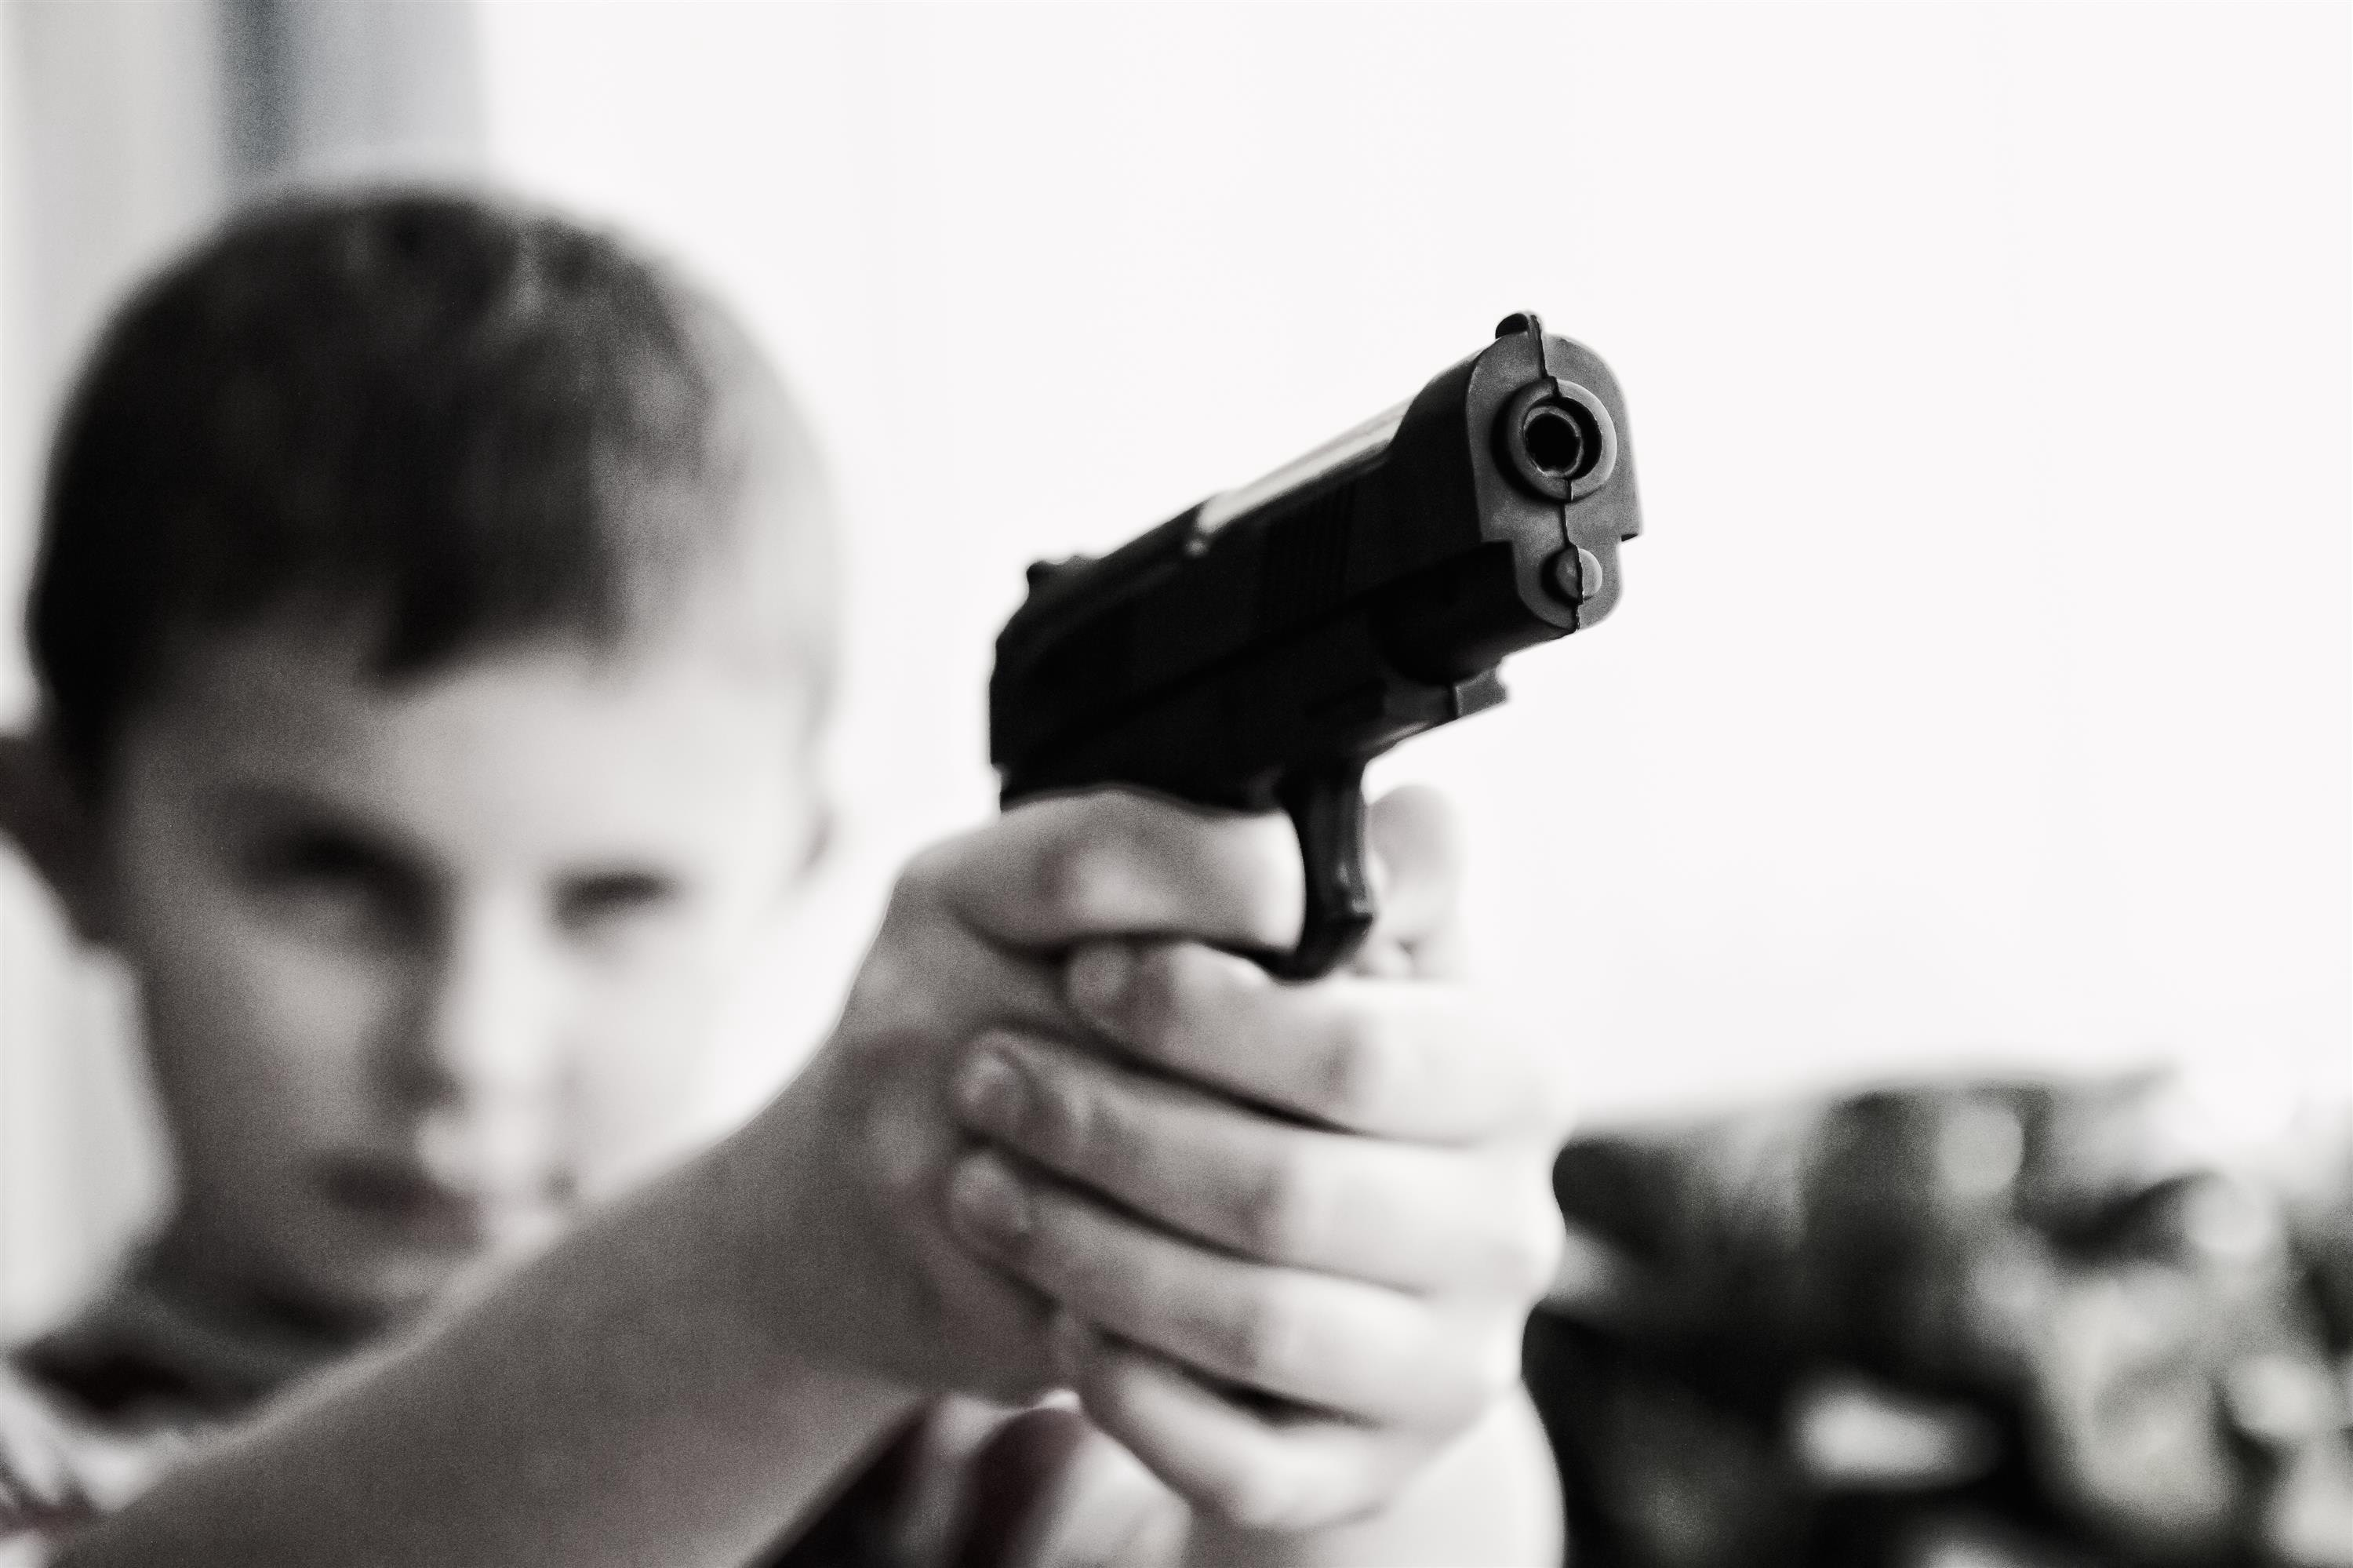 Child aims pistol toward the camera. His expression is determined.